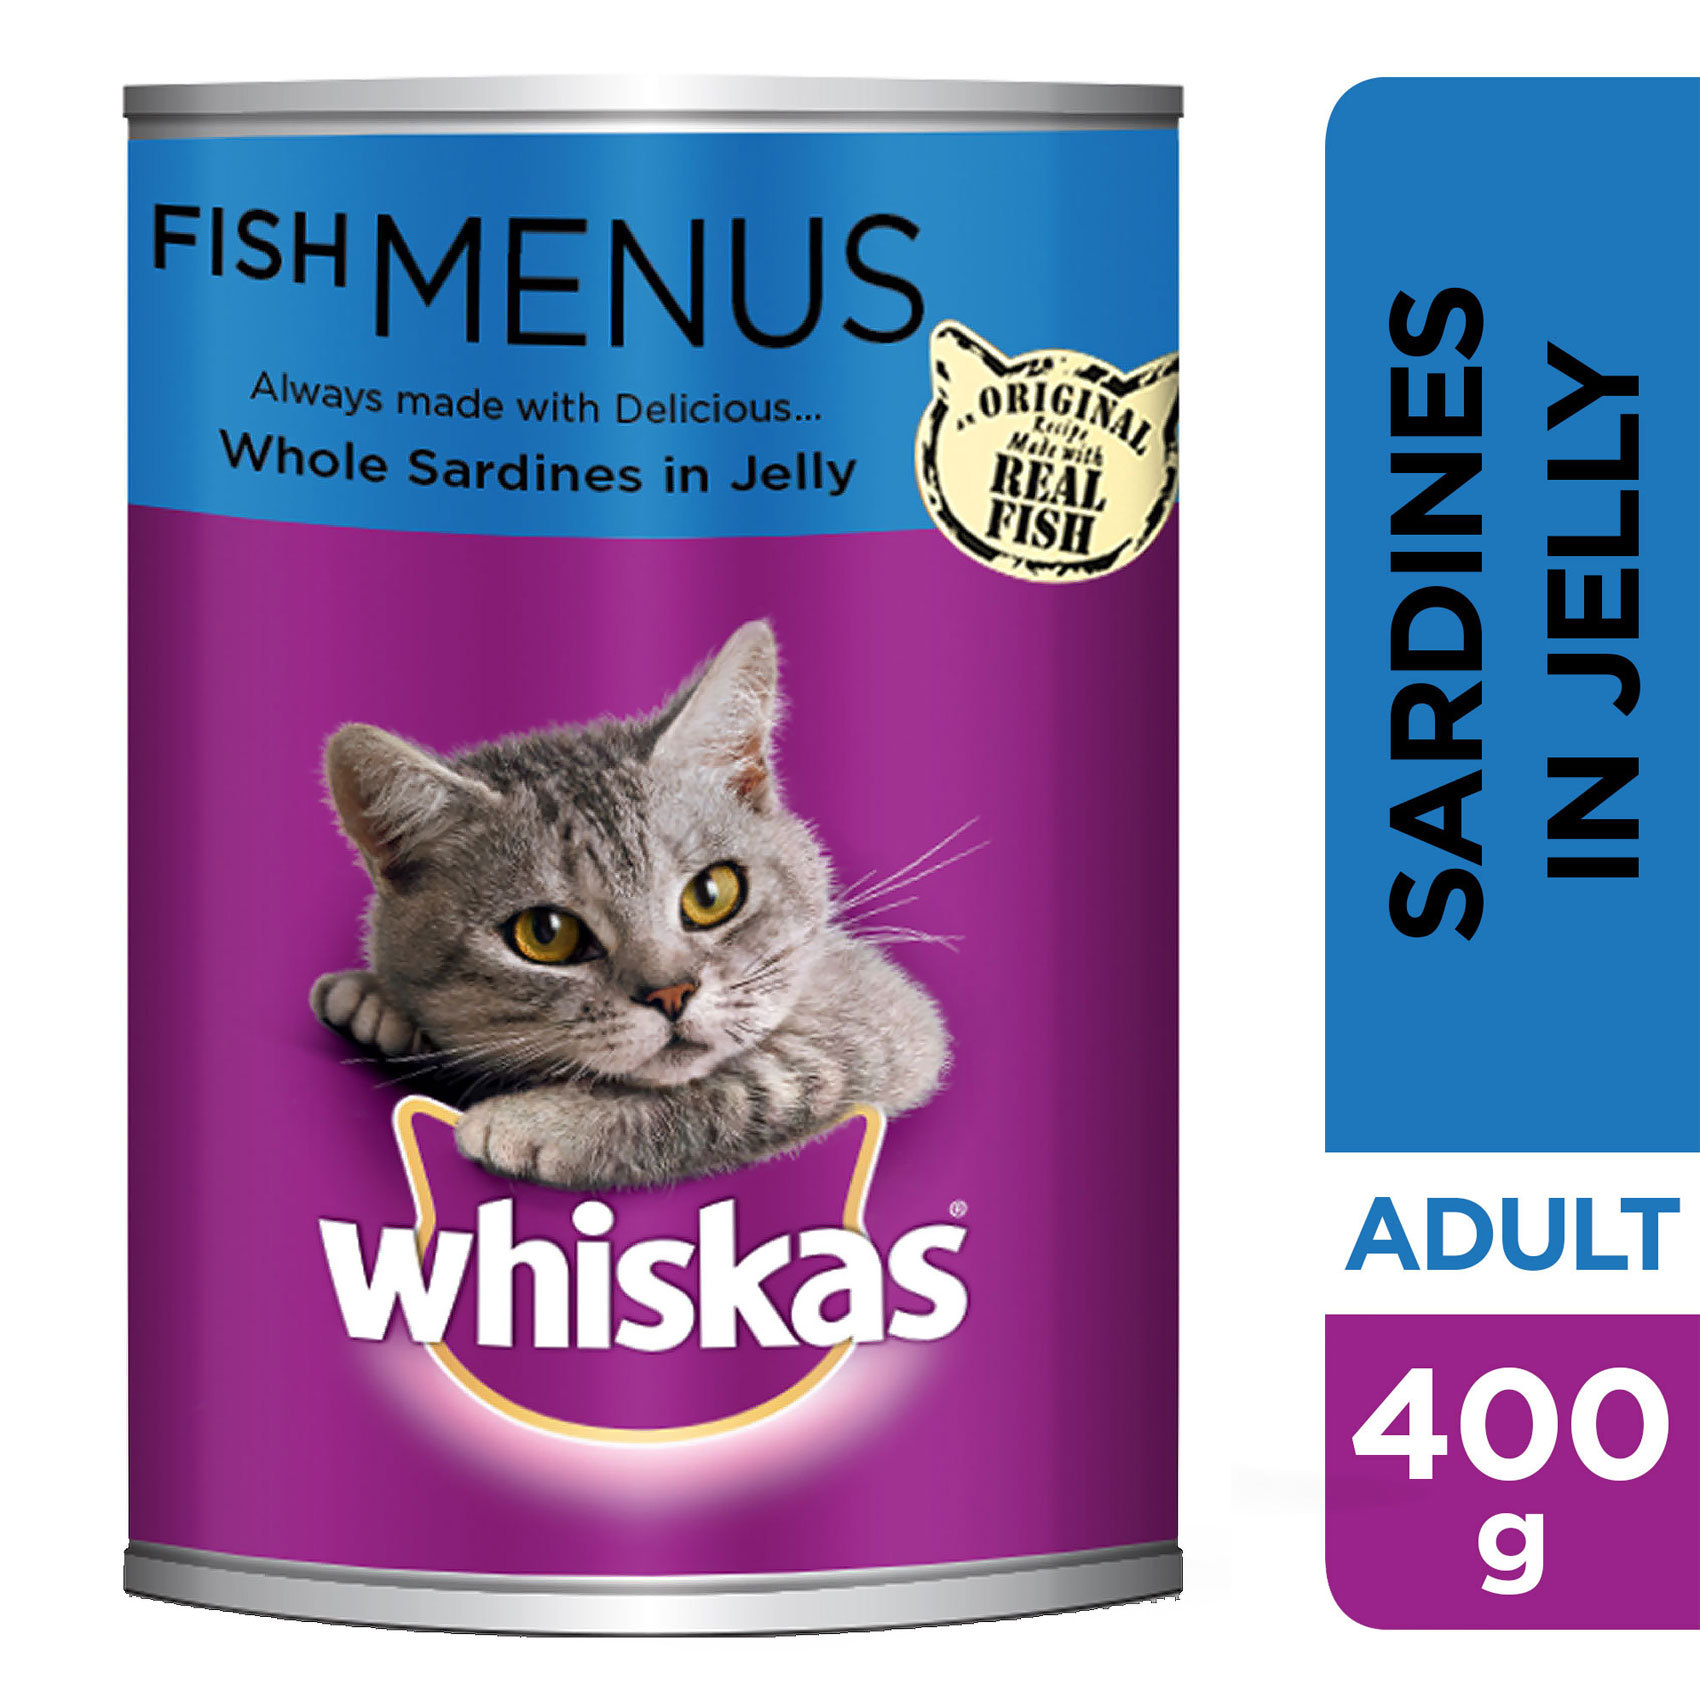 WHISKAS SARDINES IN JELLY 400G